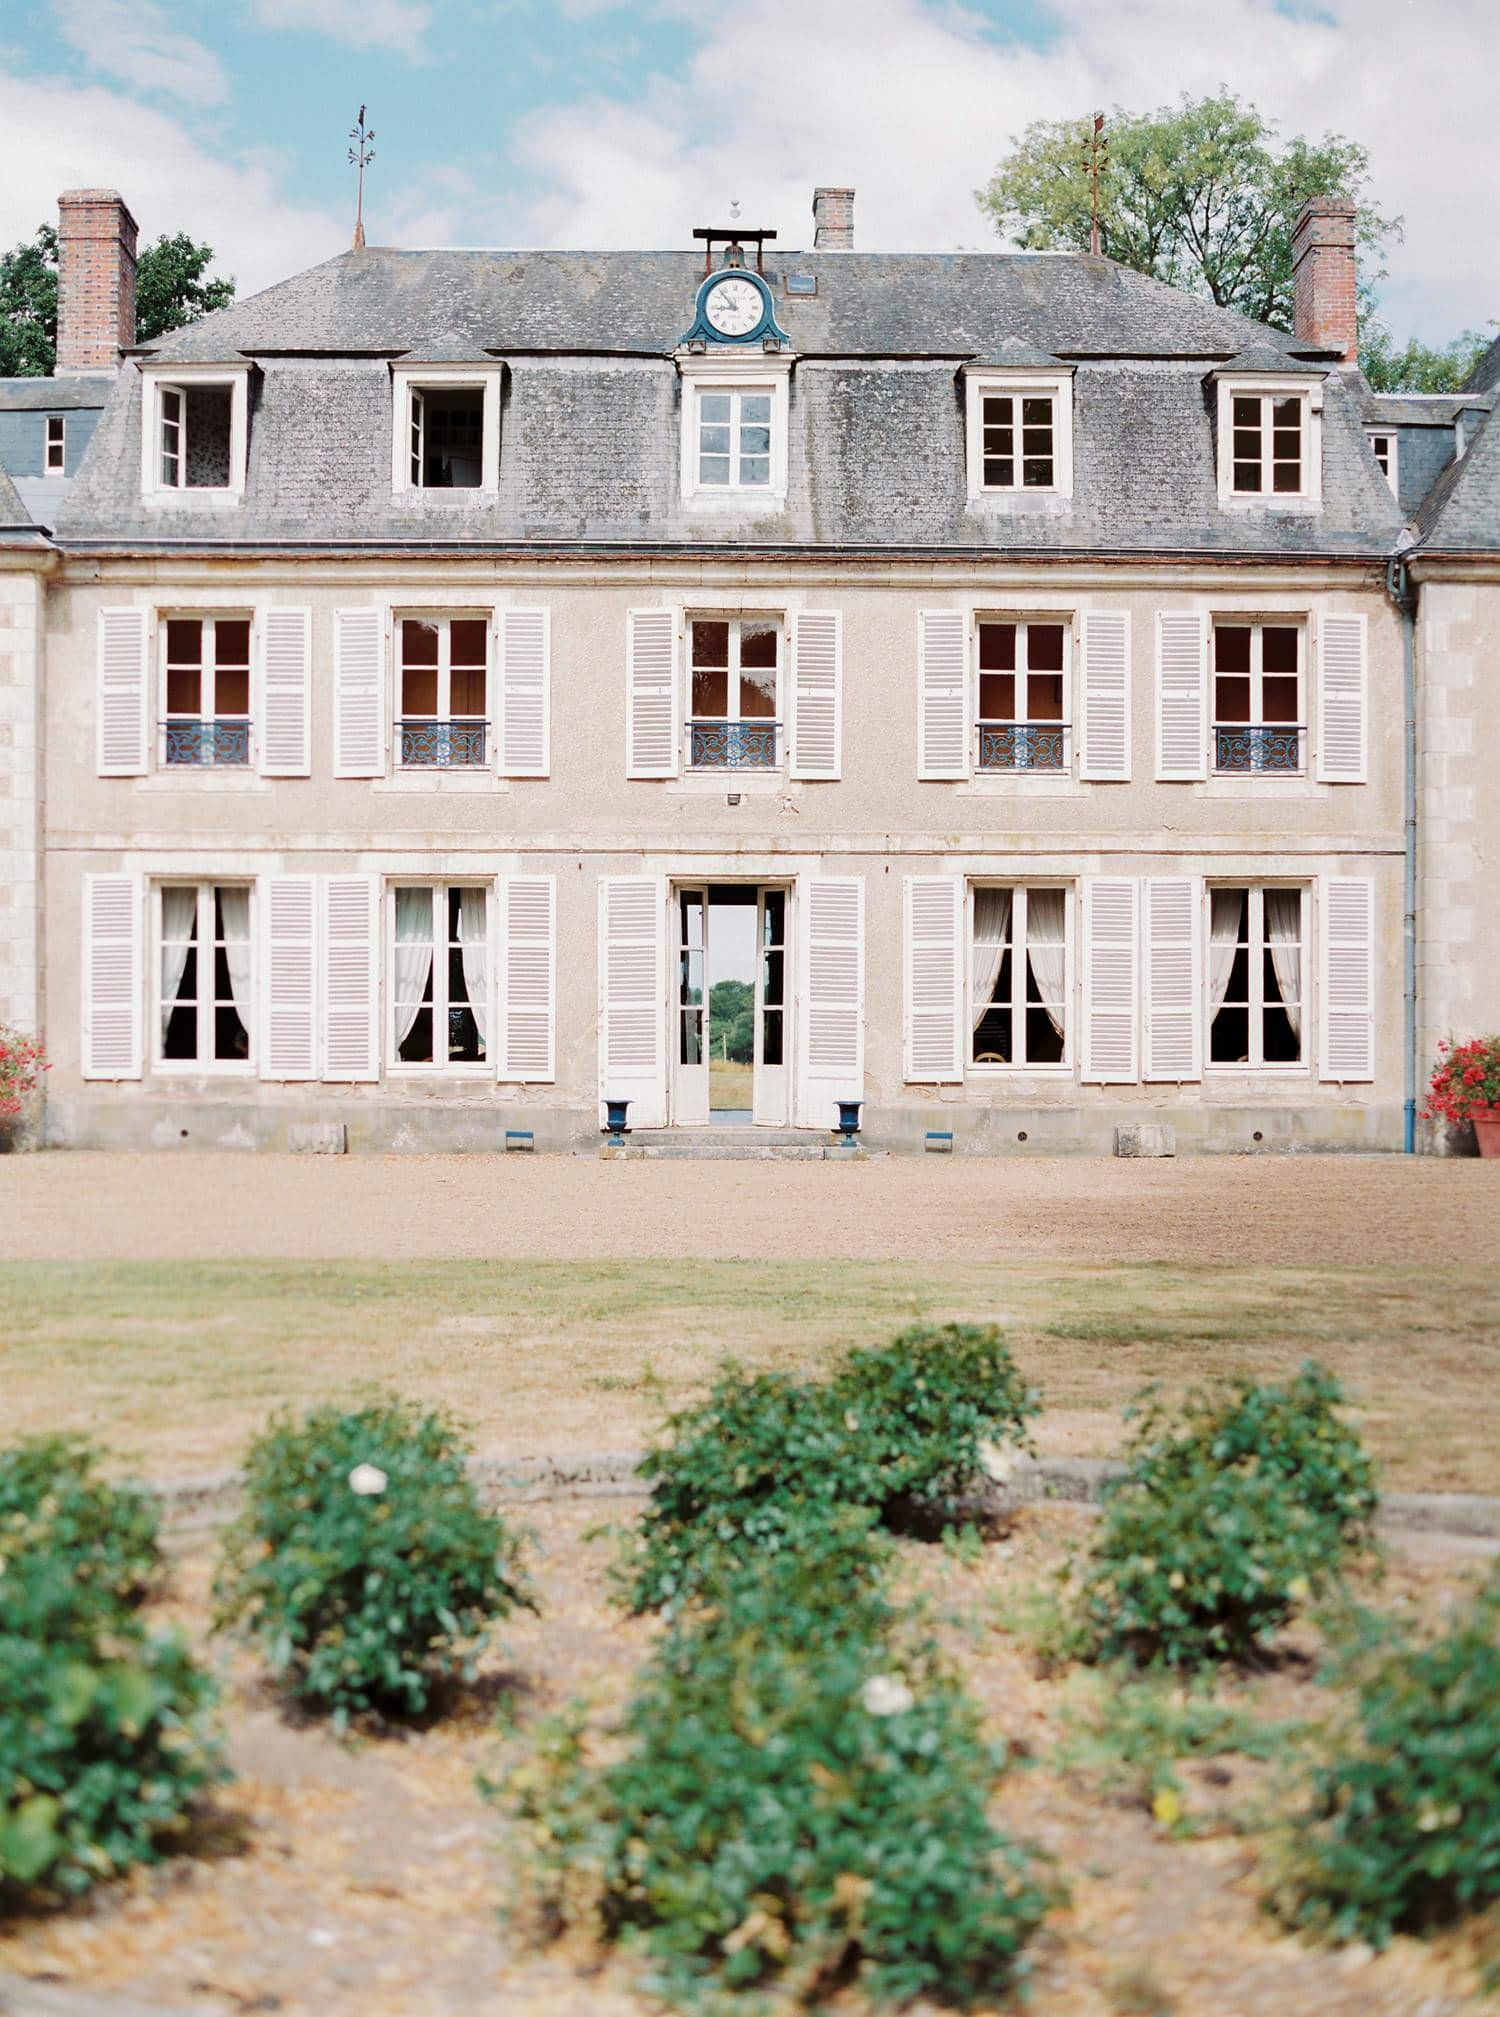 backyard of chateau de bouthonvilliers